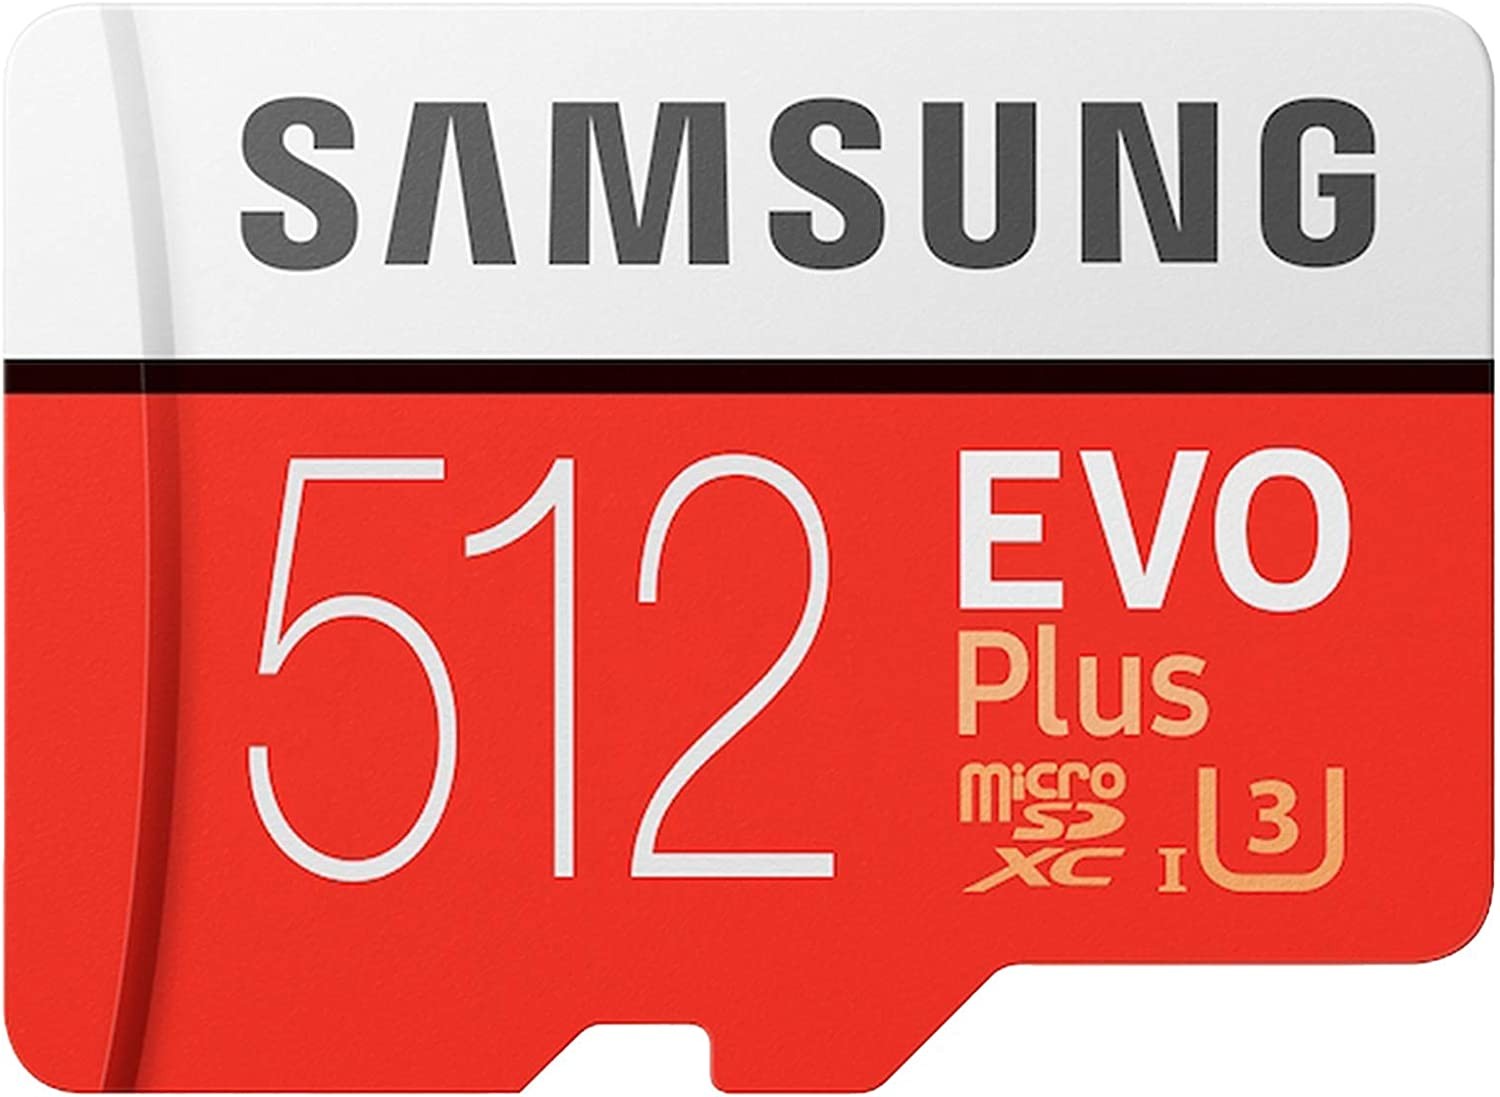 Micro Sdxc Evo Plus Bundle 512gb Compatible With Samsung Galaxy S10 S10 S10e Phone Mb Mc512 Plus Everything But Stromboli Tm Card Reader Computers Accessories